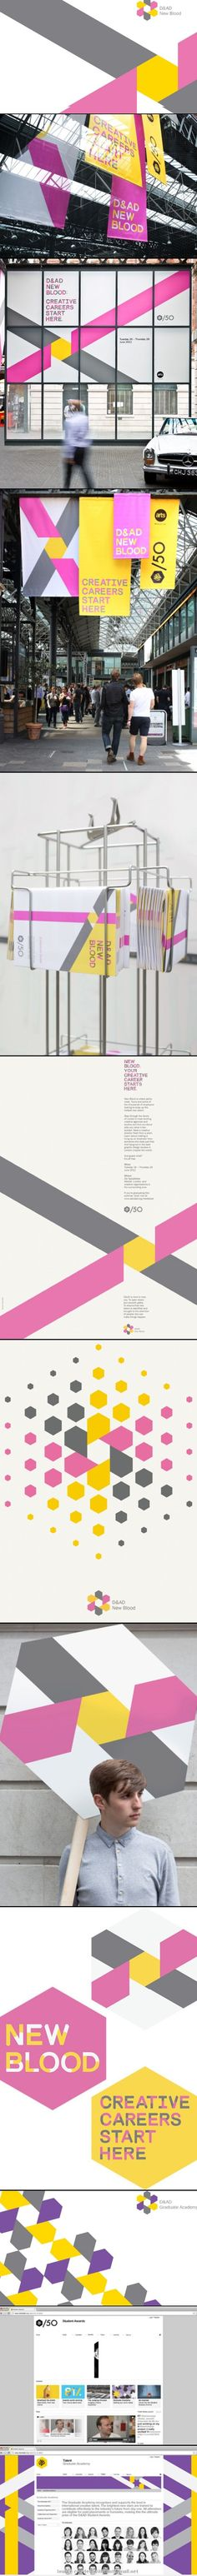 Identity / d&ad  ihnynotes: color pops. The UX Blog podcast is also available on iTunes.